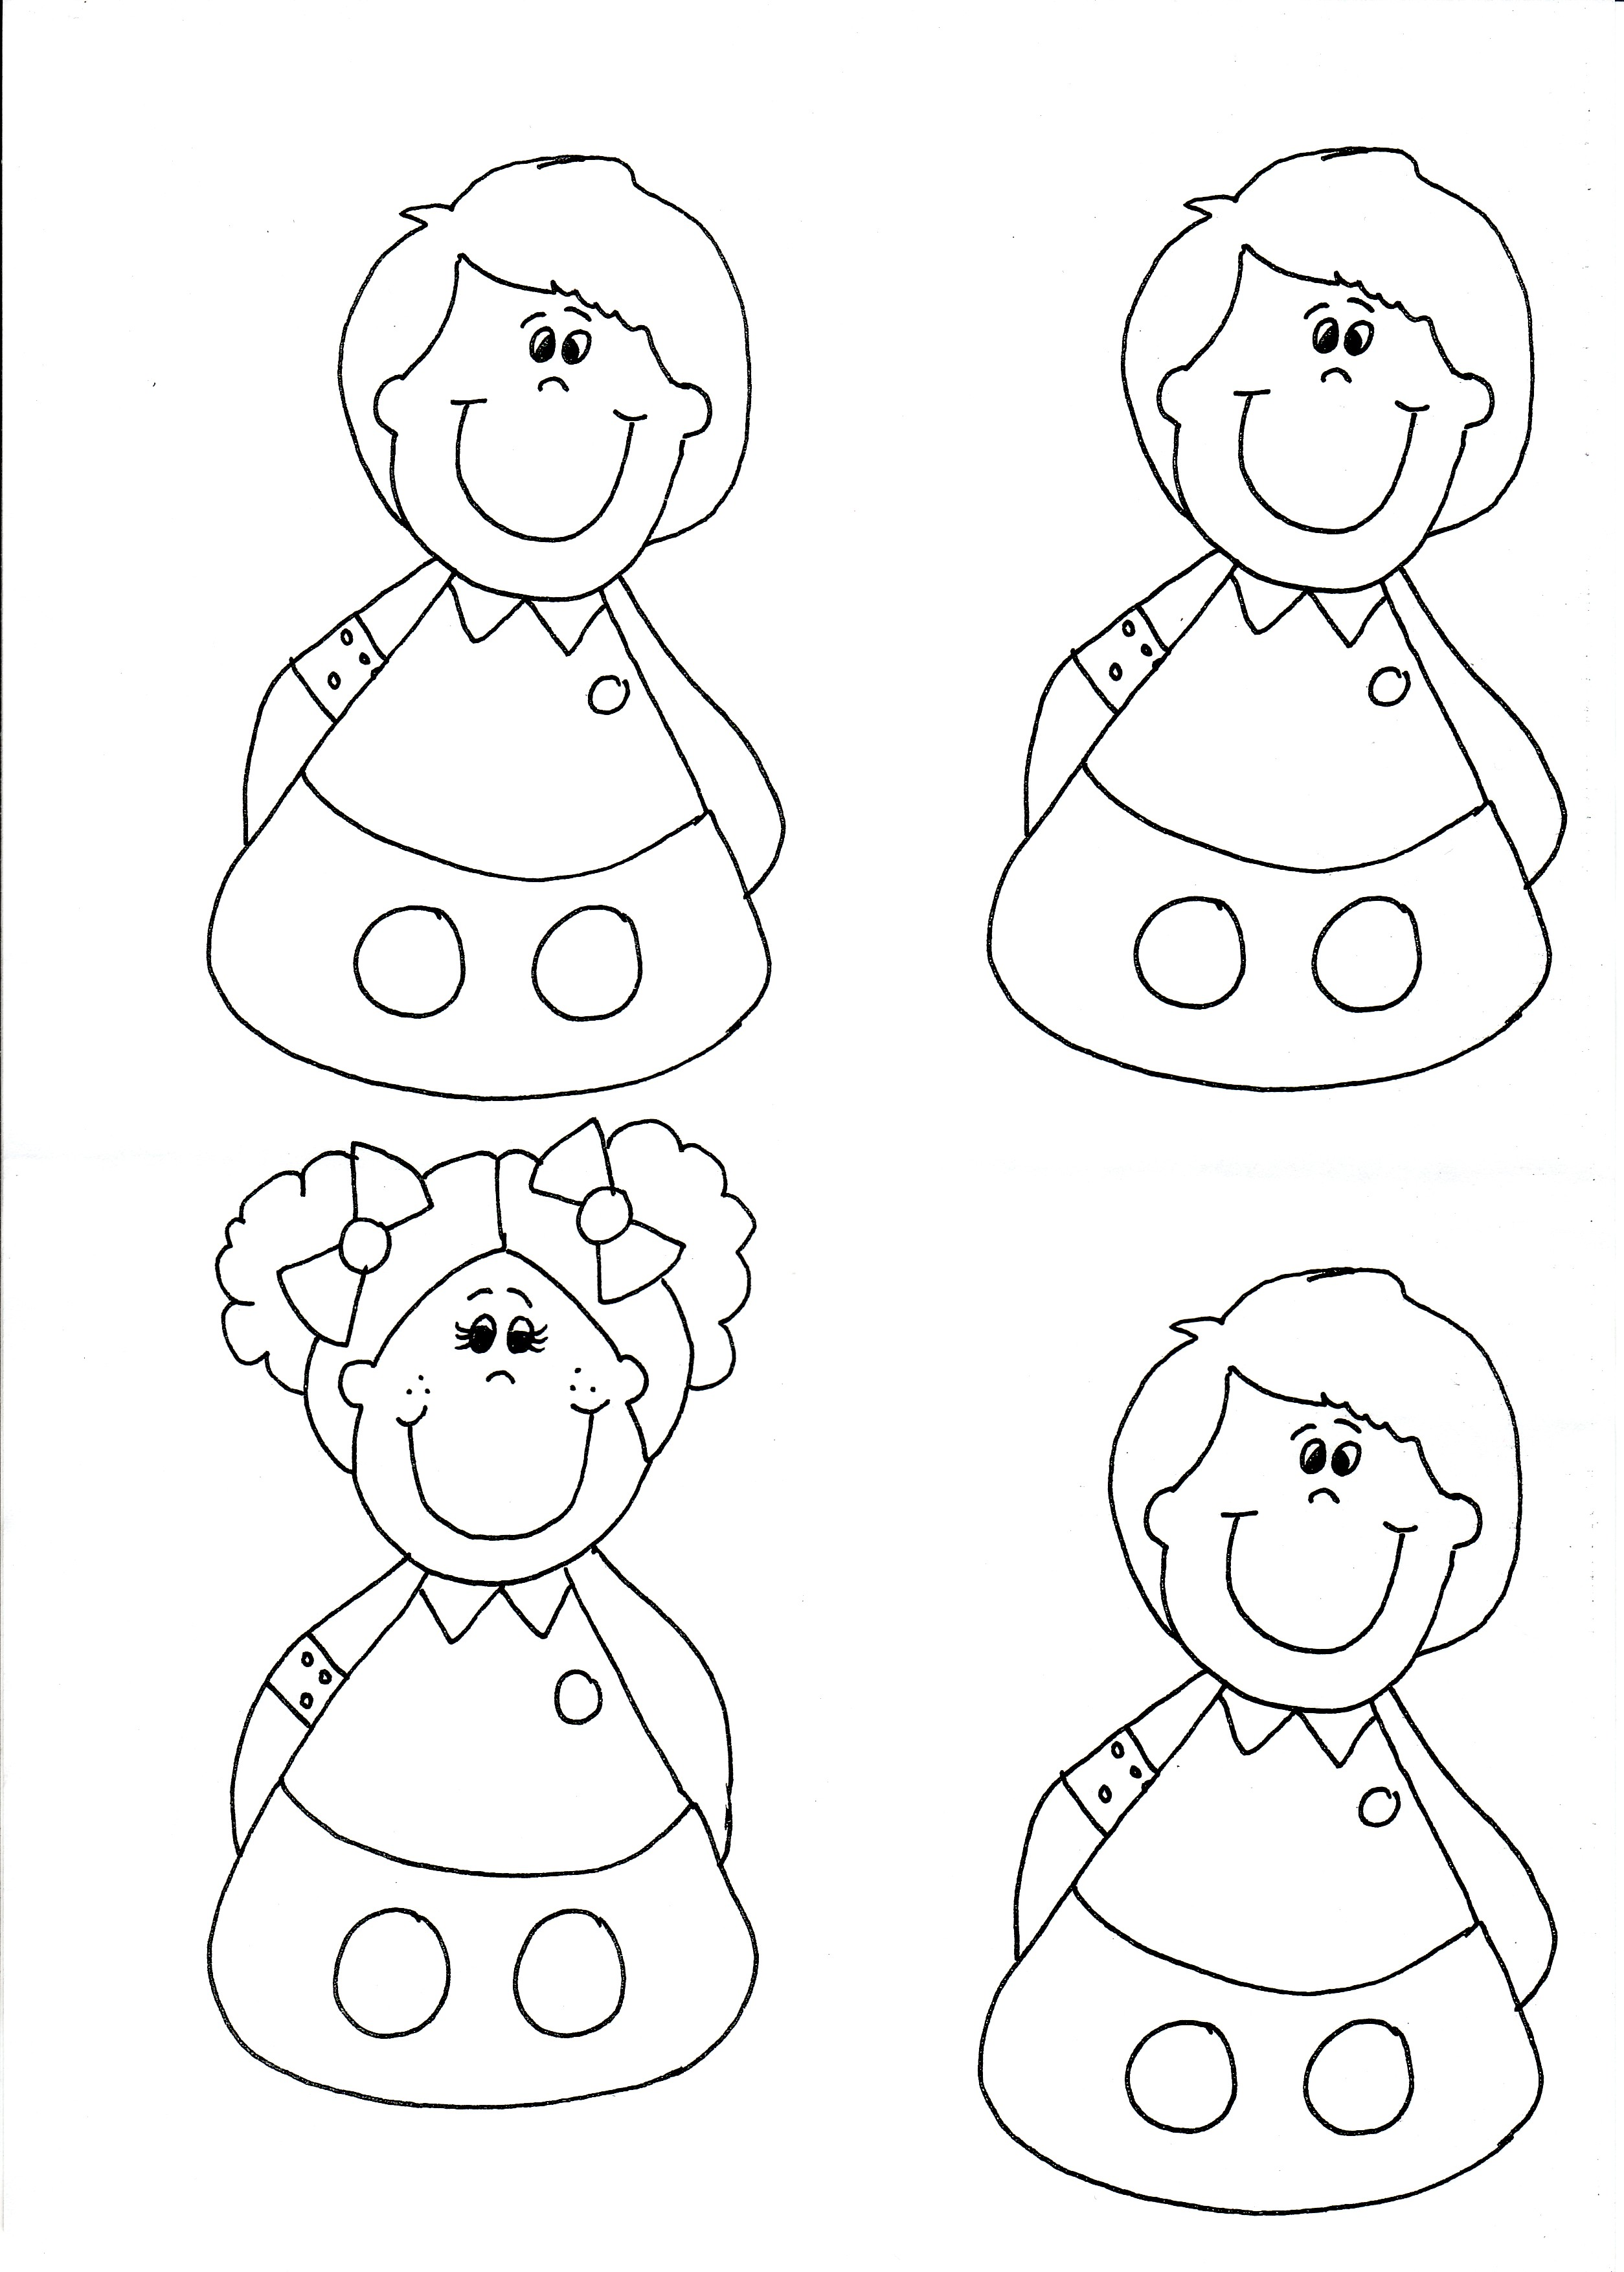 printable finger puppet templates